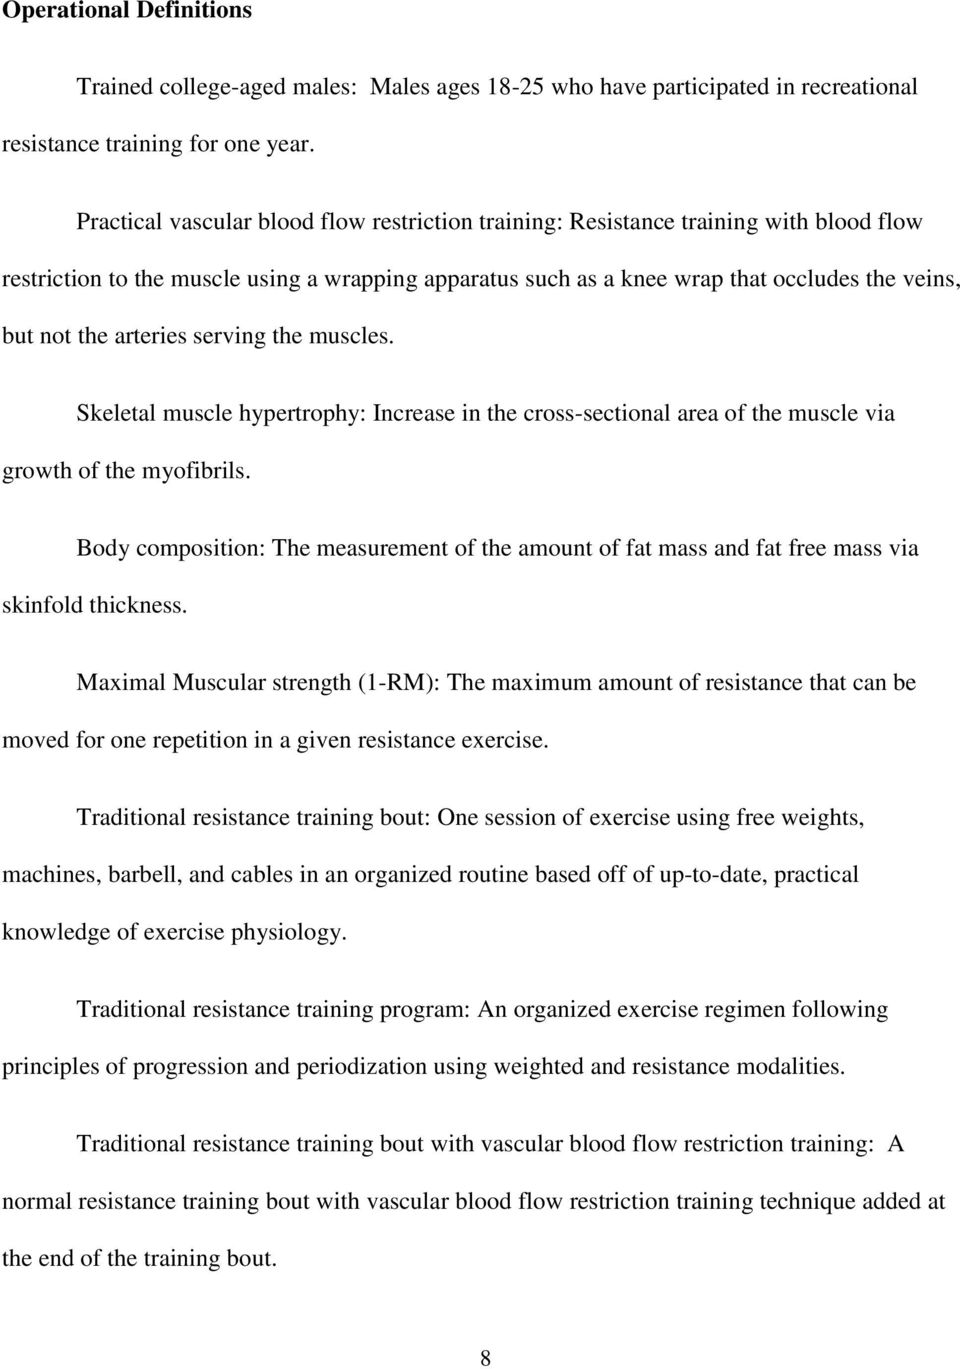 The Hypertrophic Effects of Practical Vascular Blood Flow